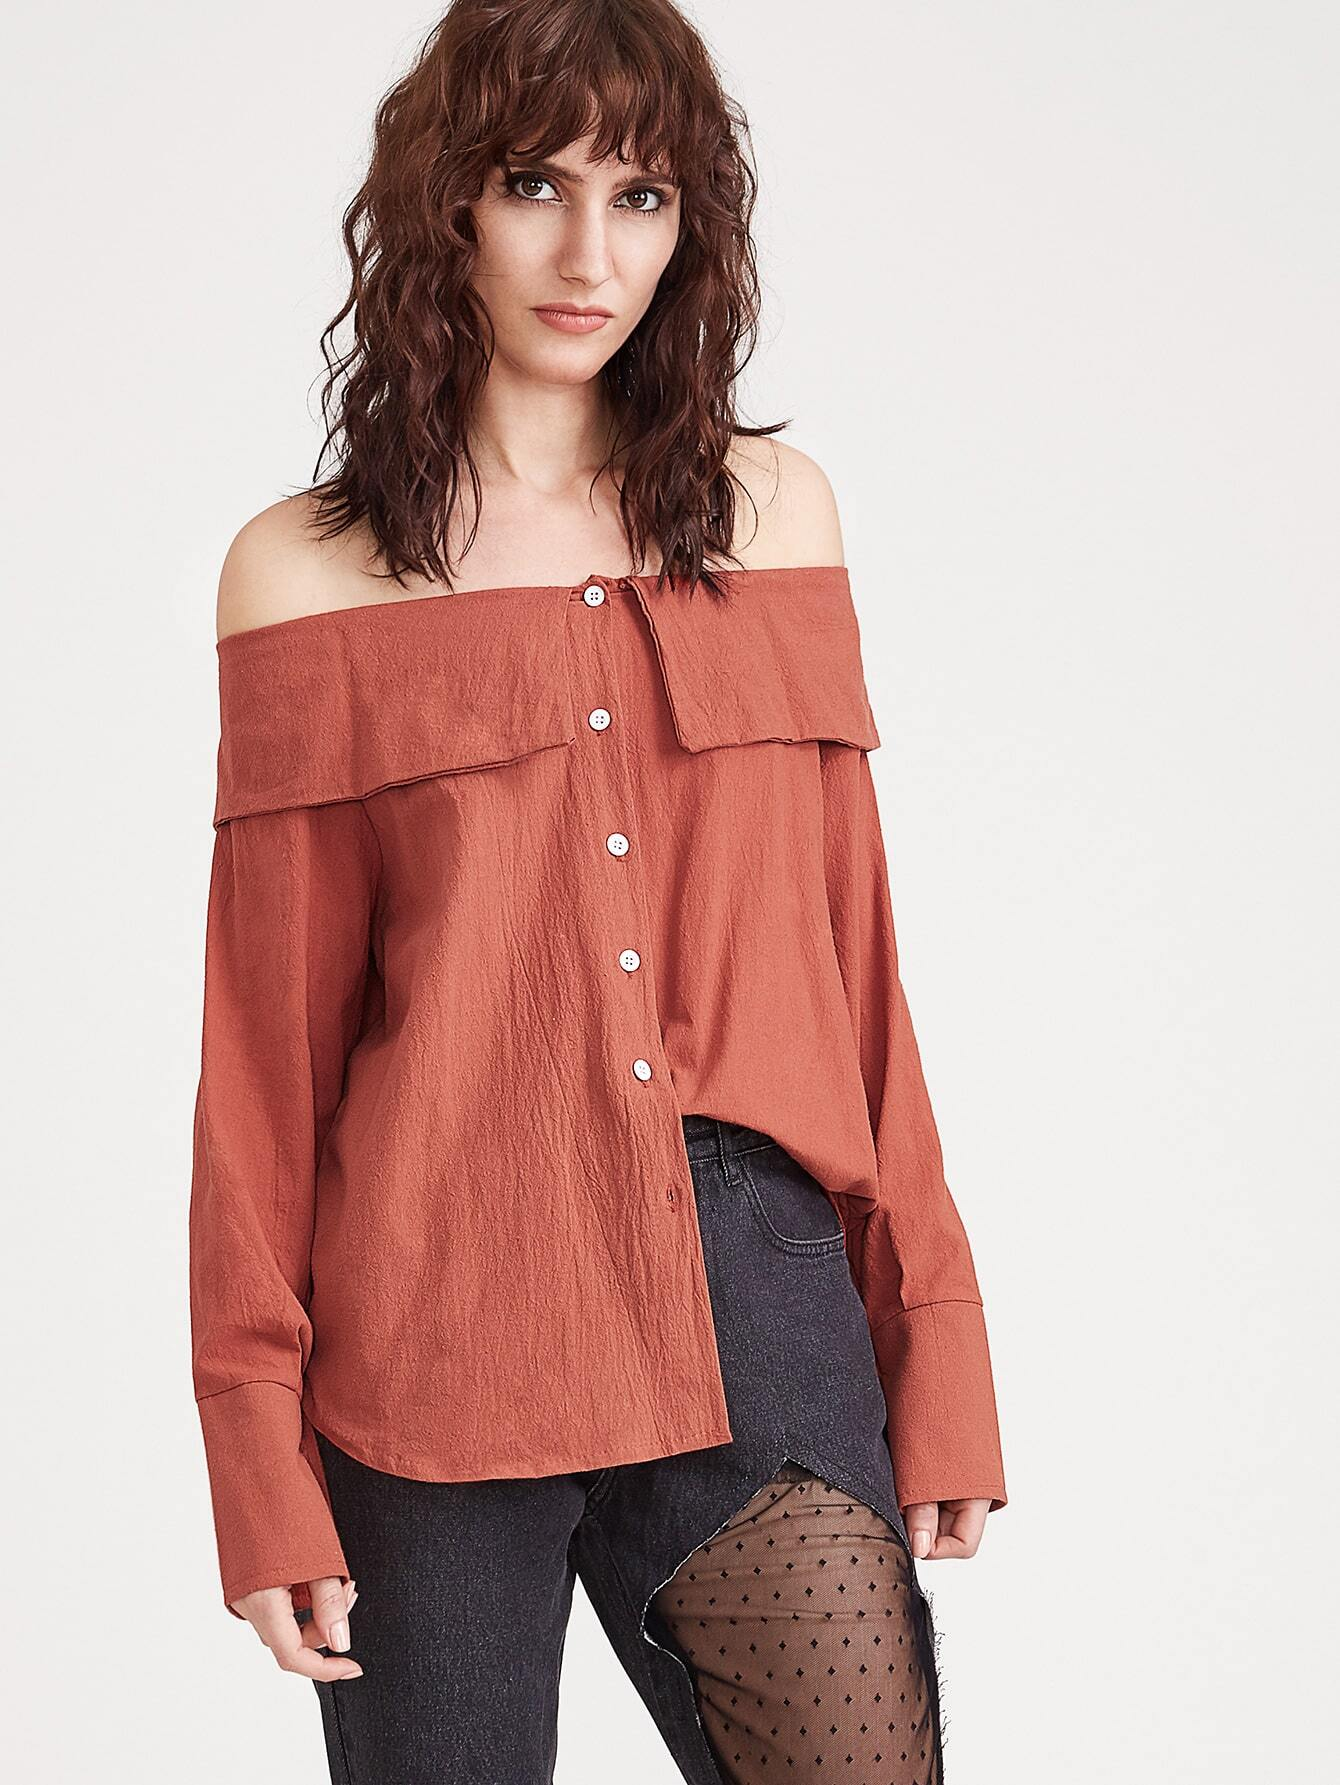 Buy Brick Red Shoulder Top